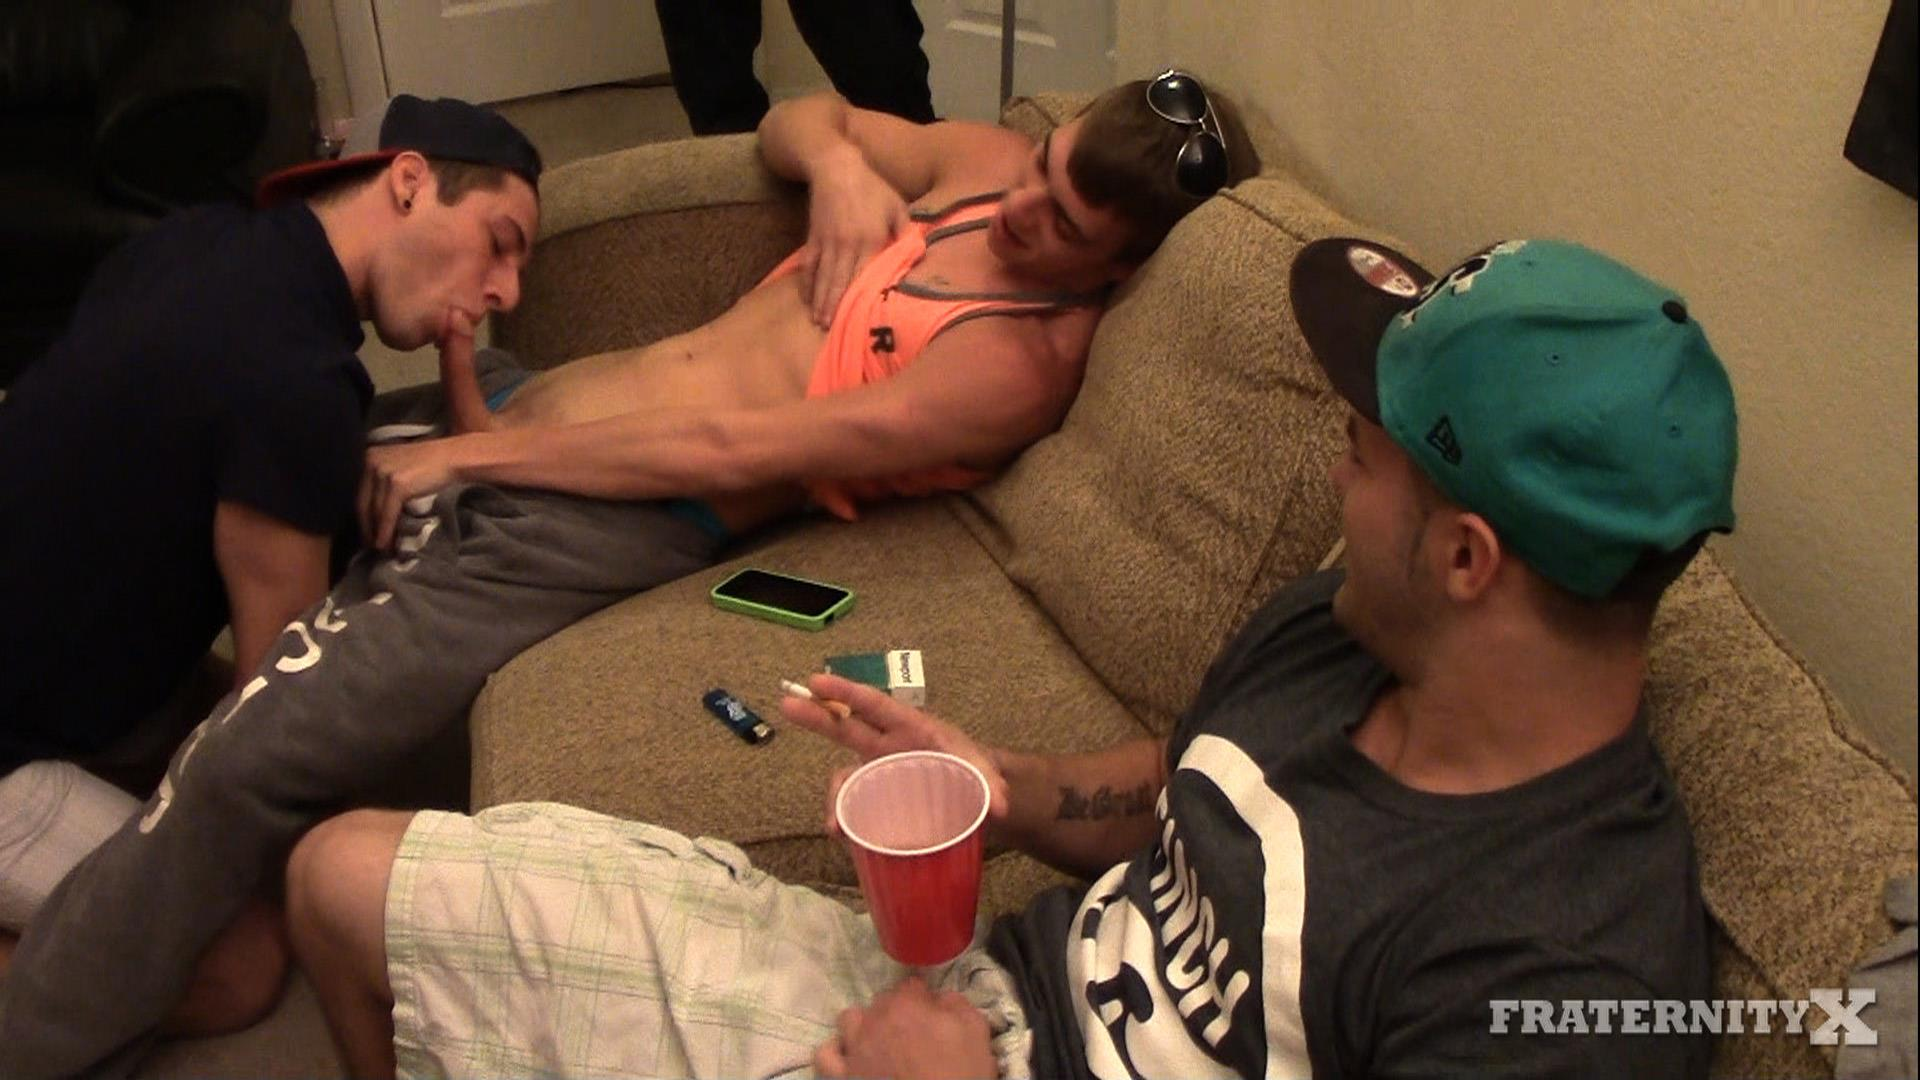 More from frat boy date